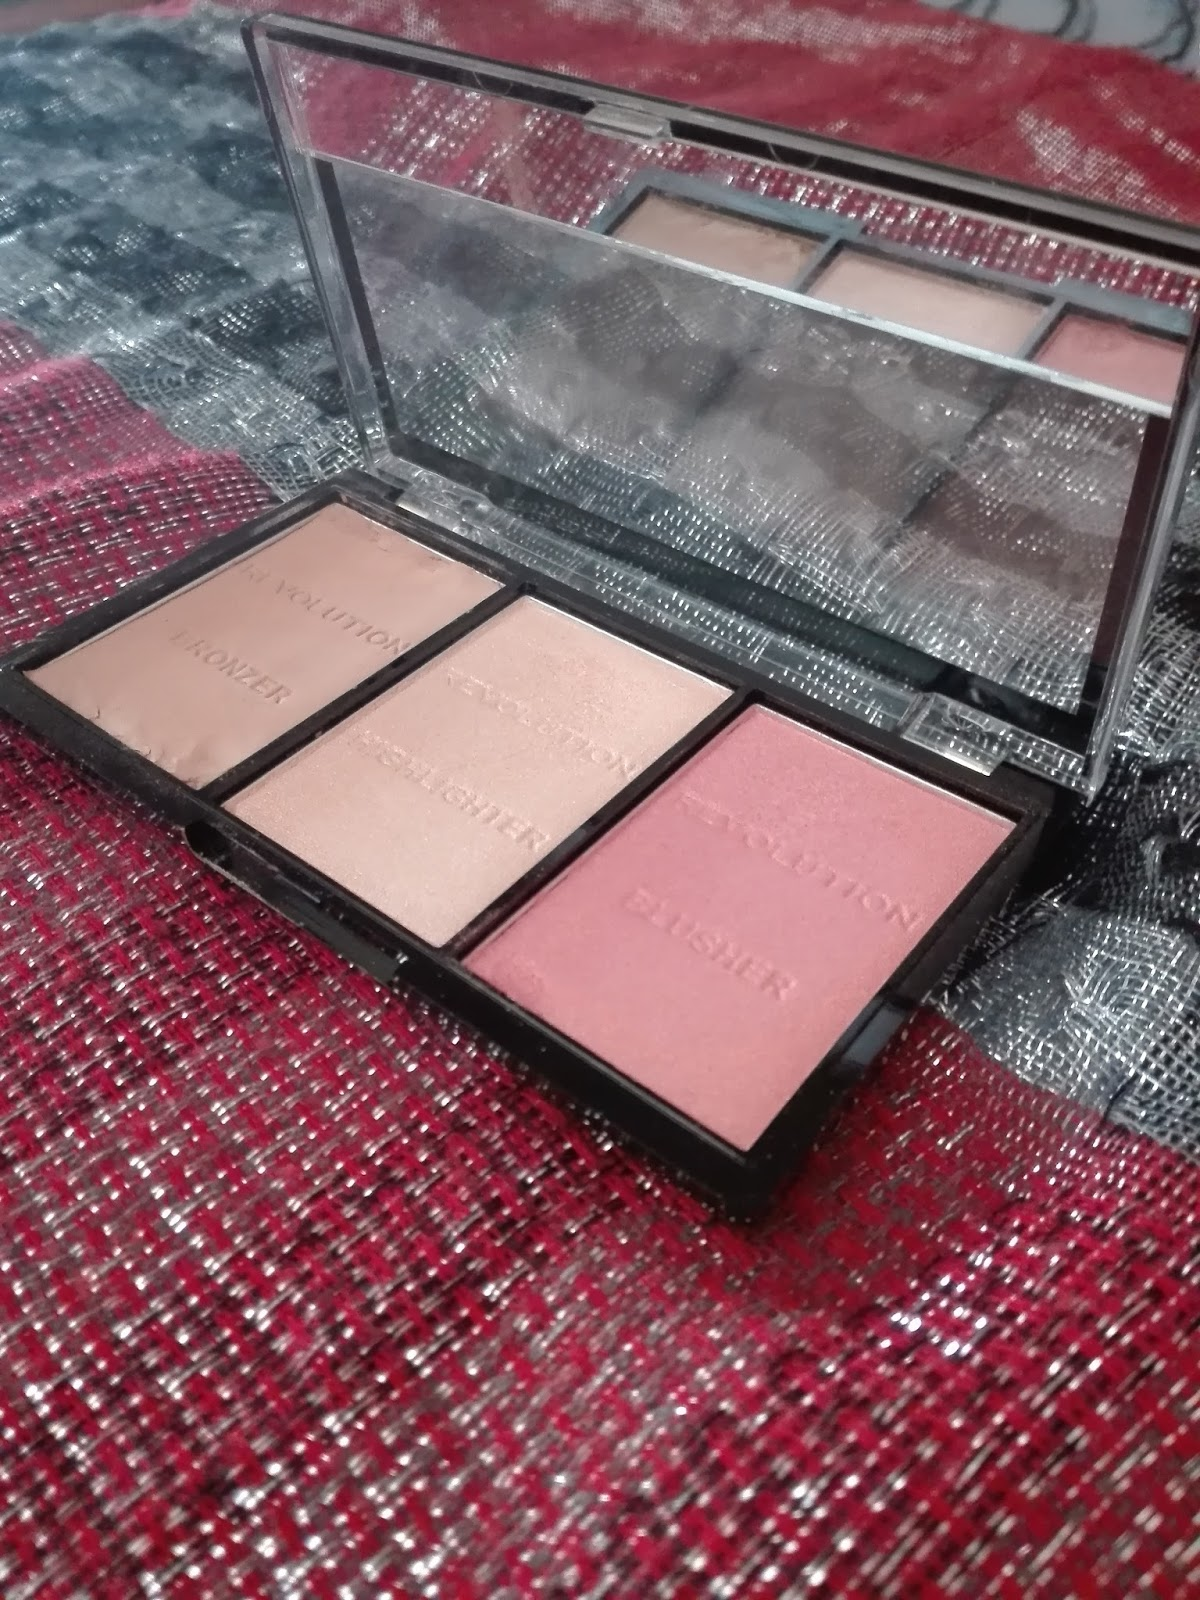 Today I'm reviewing Makeup Revolution Ultra Sculpt and Contour Pallet in shade (Ultra Fair C01).